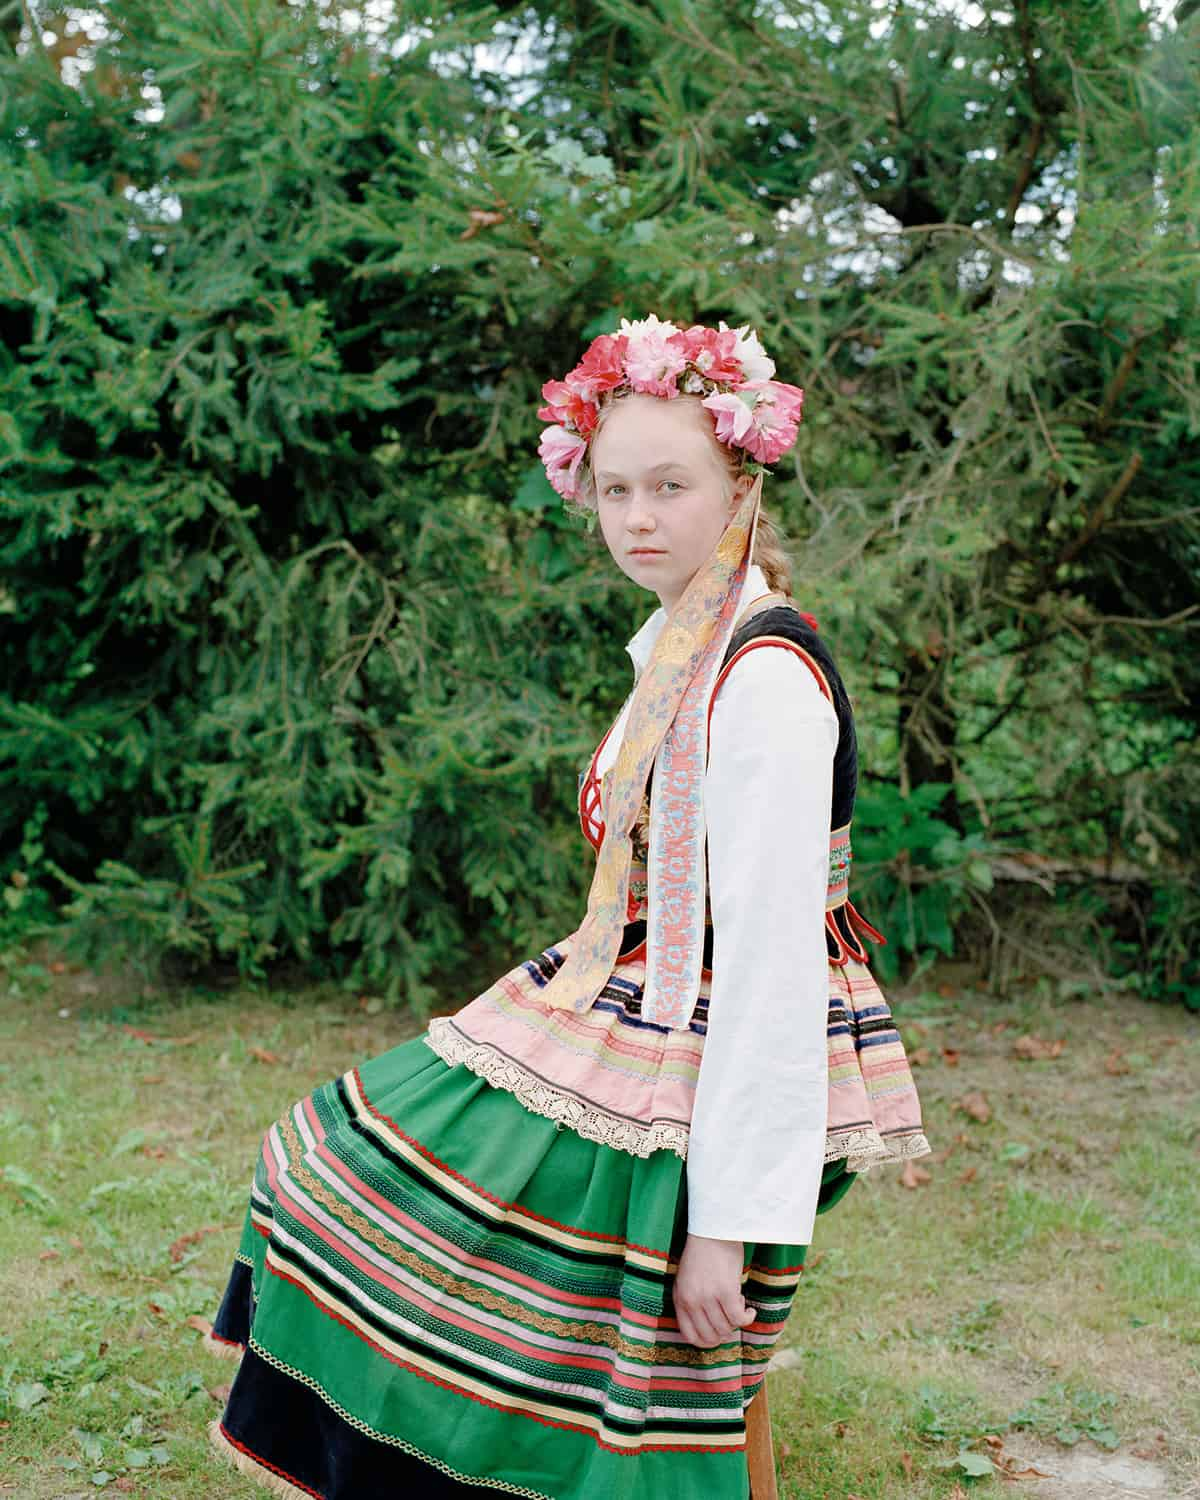 Darek Fortas, Portrait I (Girl in Traditional Outfit), from the series 'At Source'; (2013), Courtesy the artist.